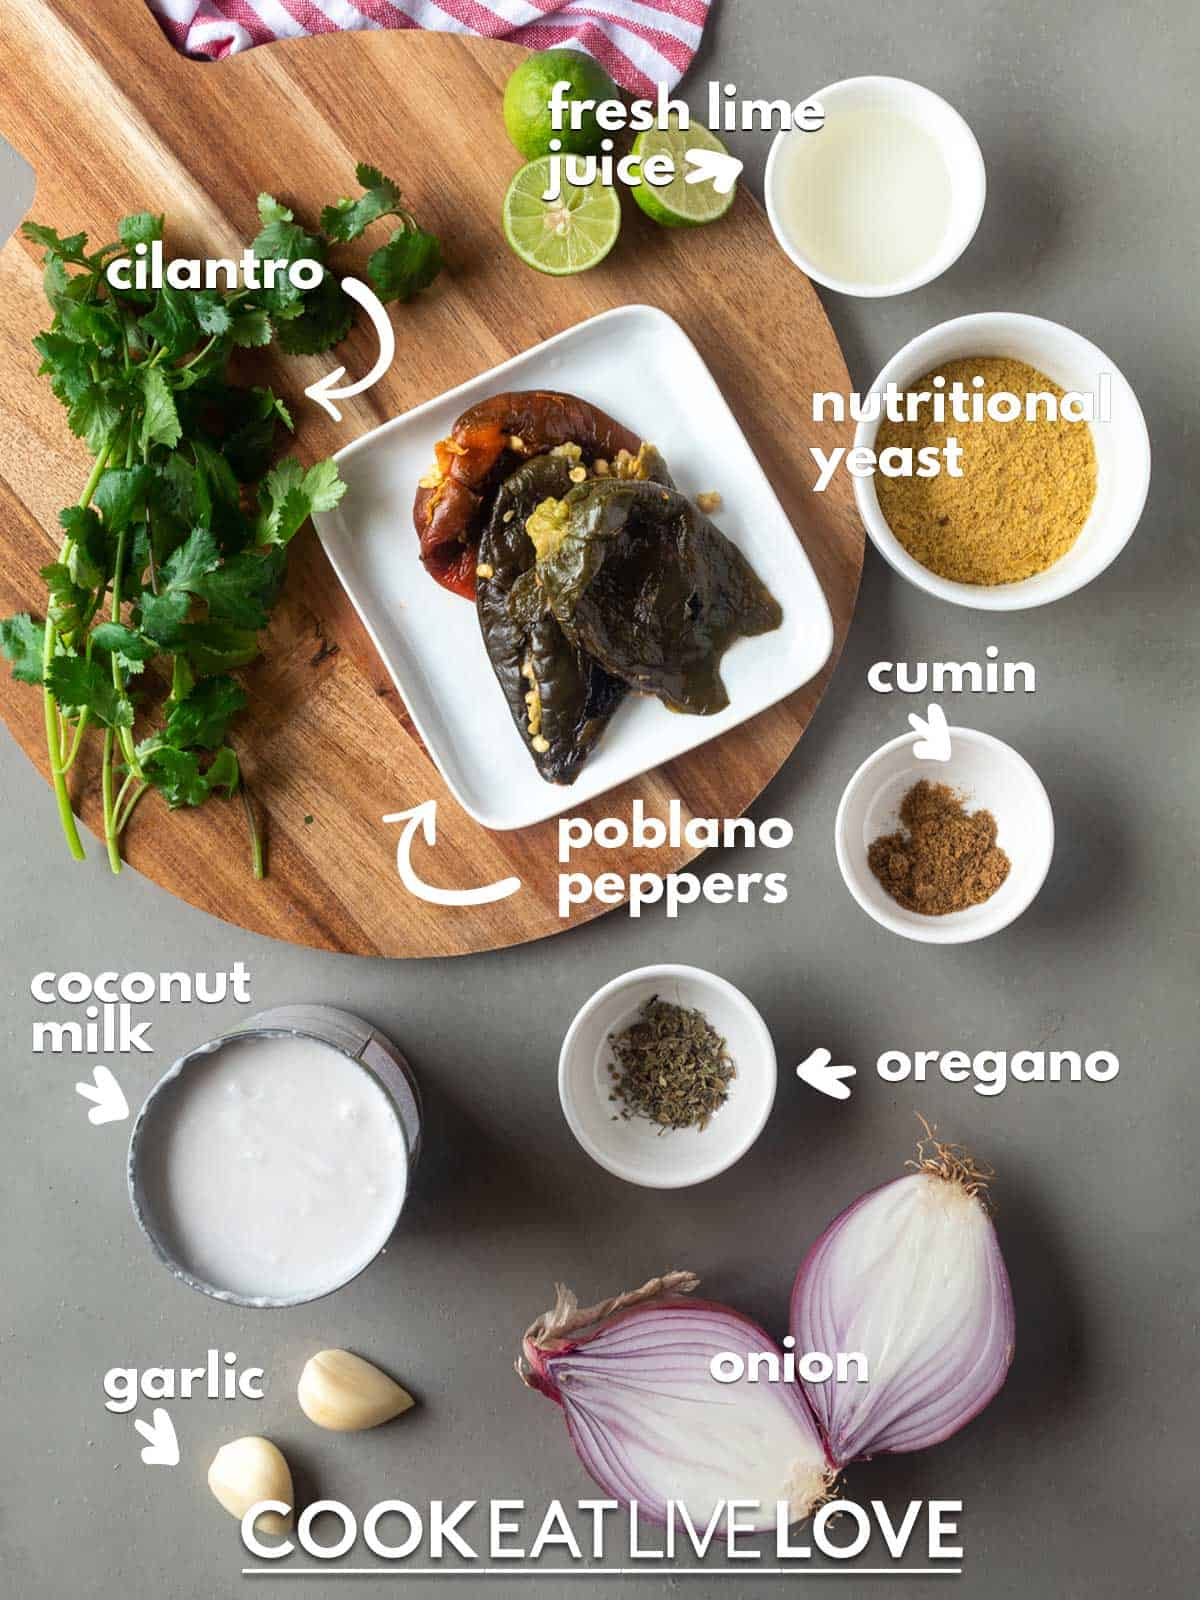 Ingredients to make poblano sauce recipe on the table with text lables